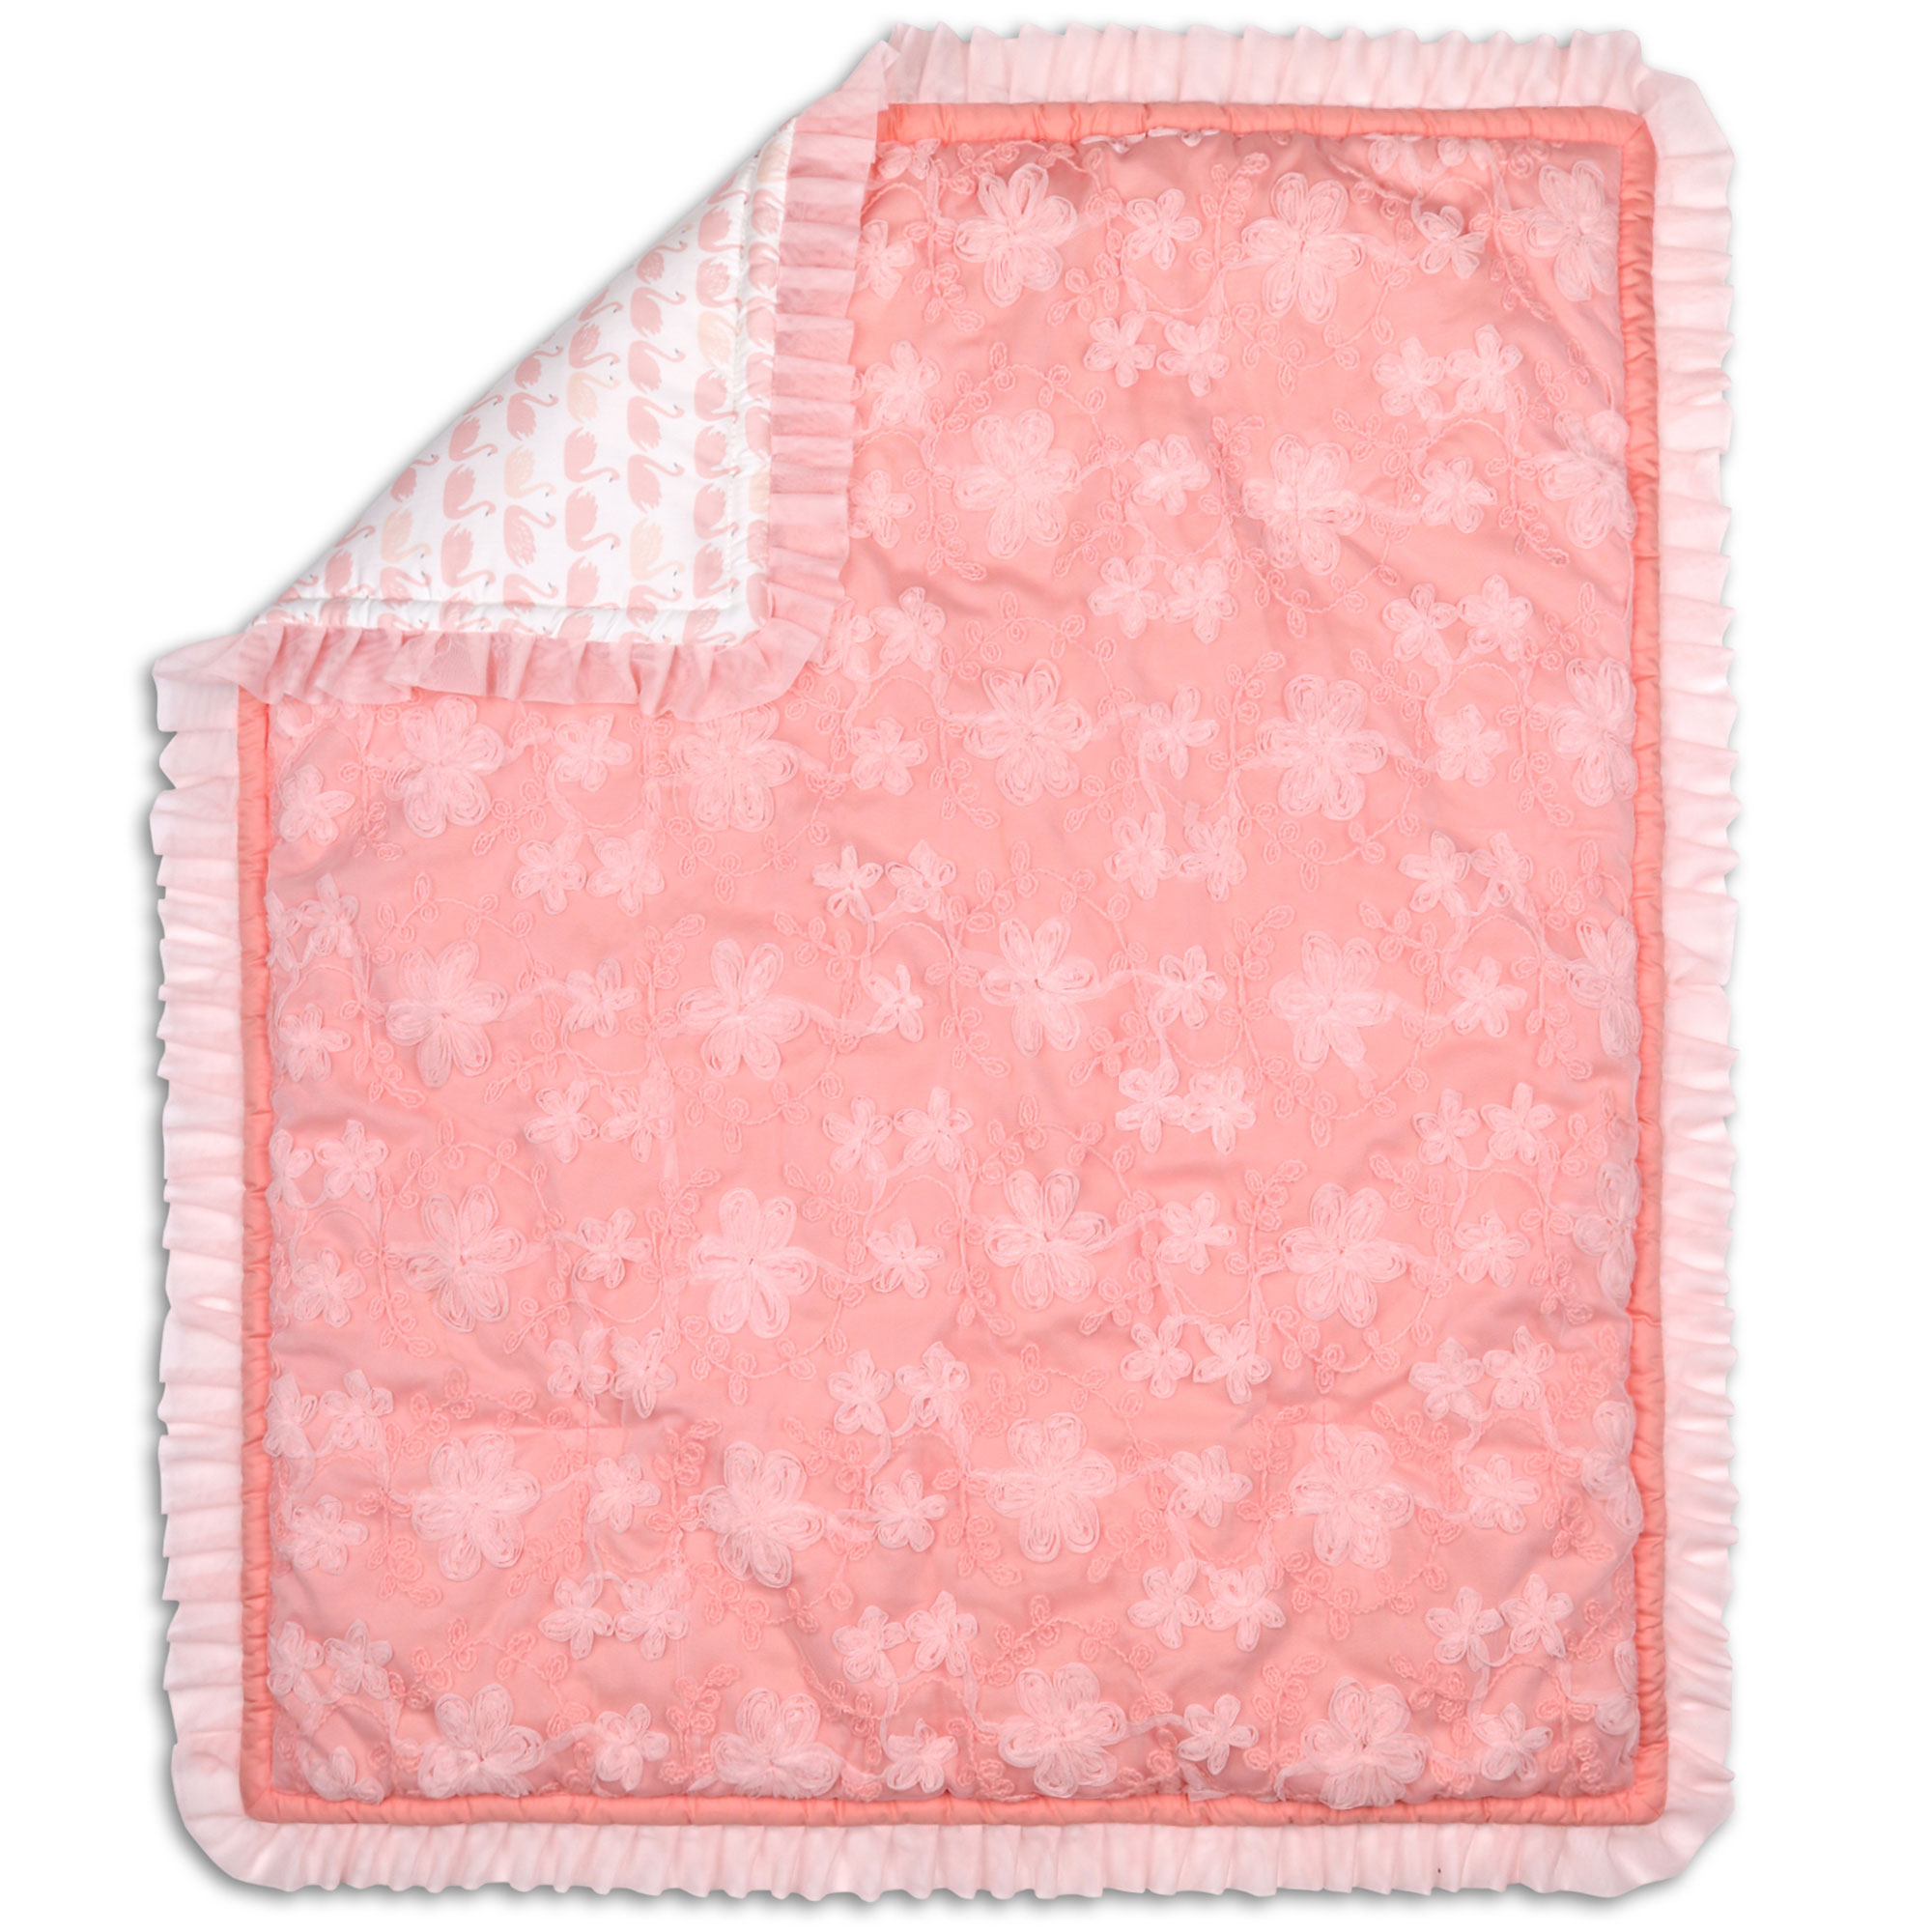 Audrey Coral Pink Floral Baby Girl Crib Quilt by The Peanut Shell by The Peanut Shell